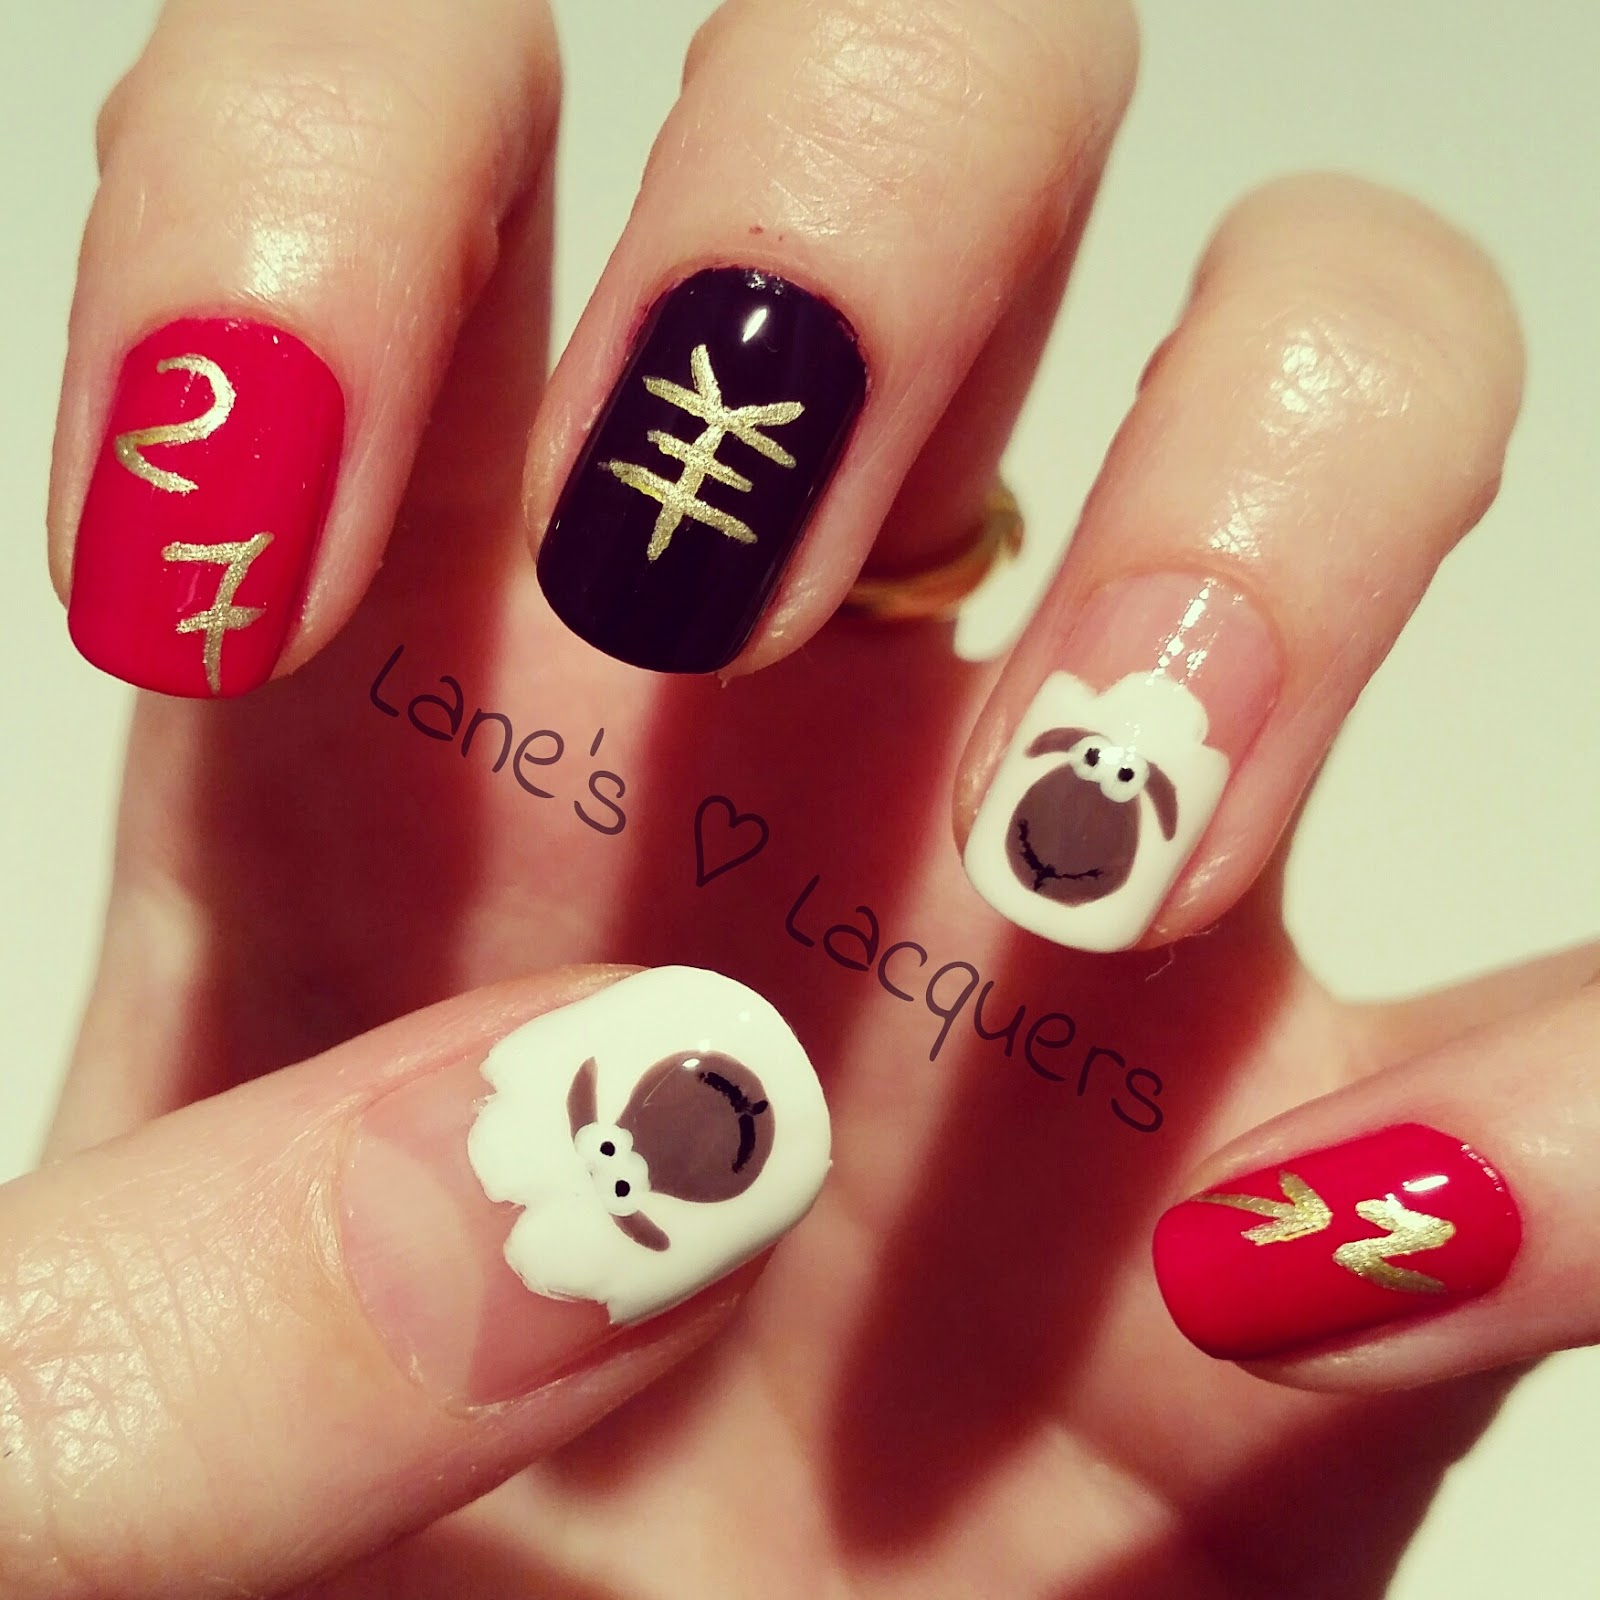 Simple Nail Art For Chinese New Year: Lane's Lacquers: Chinese New Year Manicure